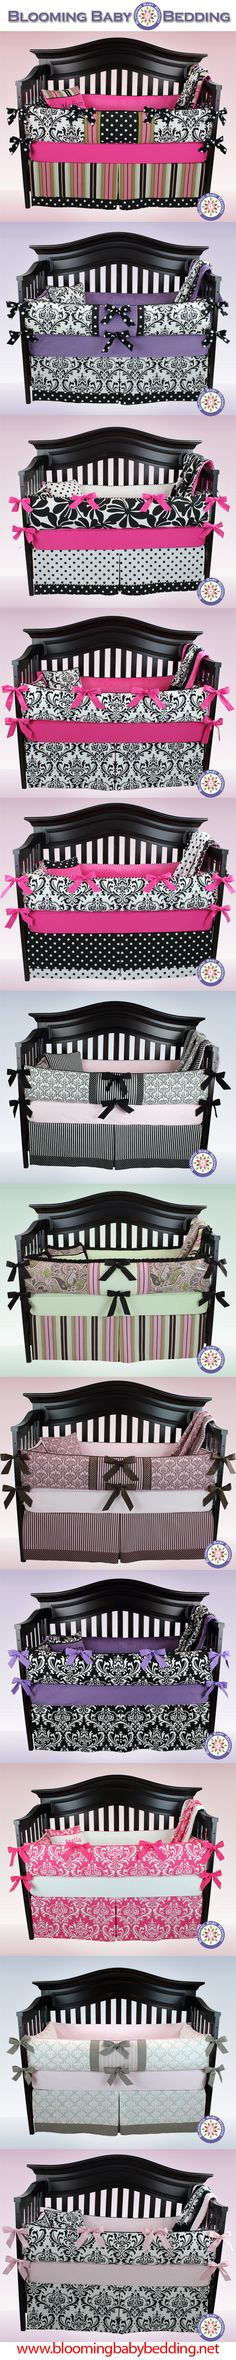 Baby Bedding - Crib Bedding - Baby Girl Bedding  Love all these think just pink and white bedding will go with her nursery design